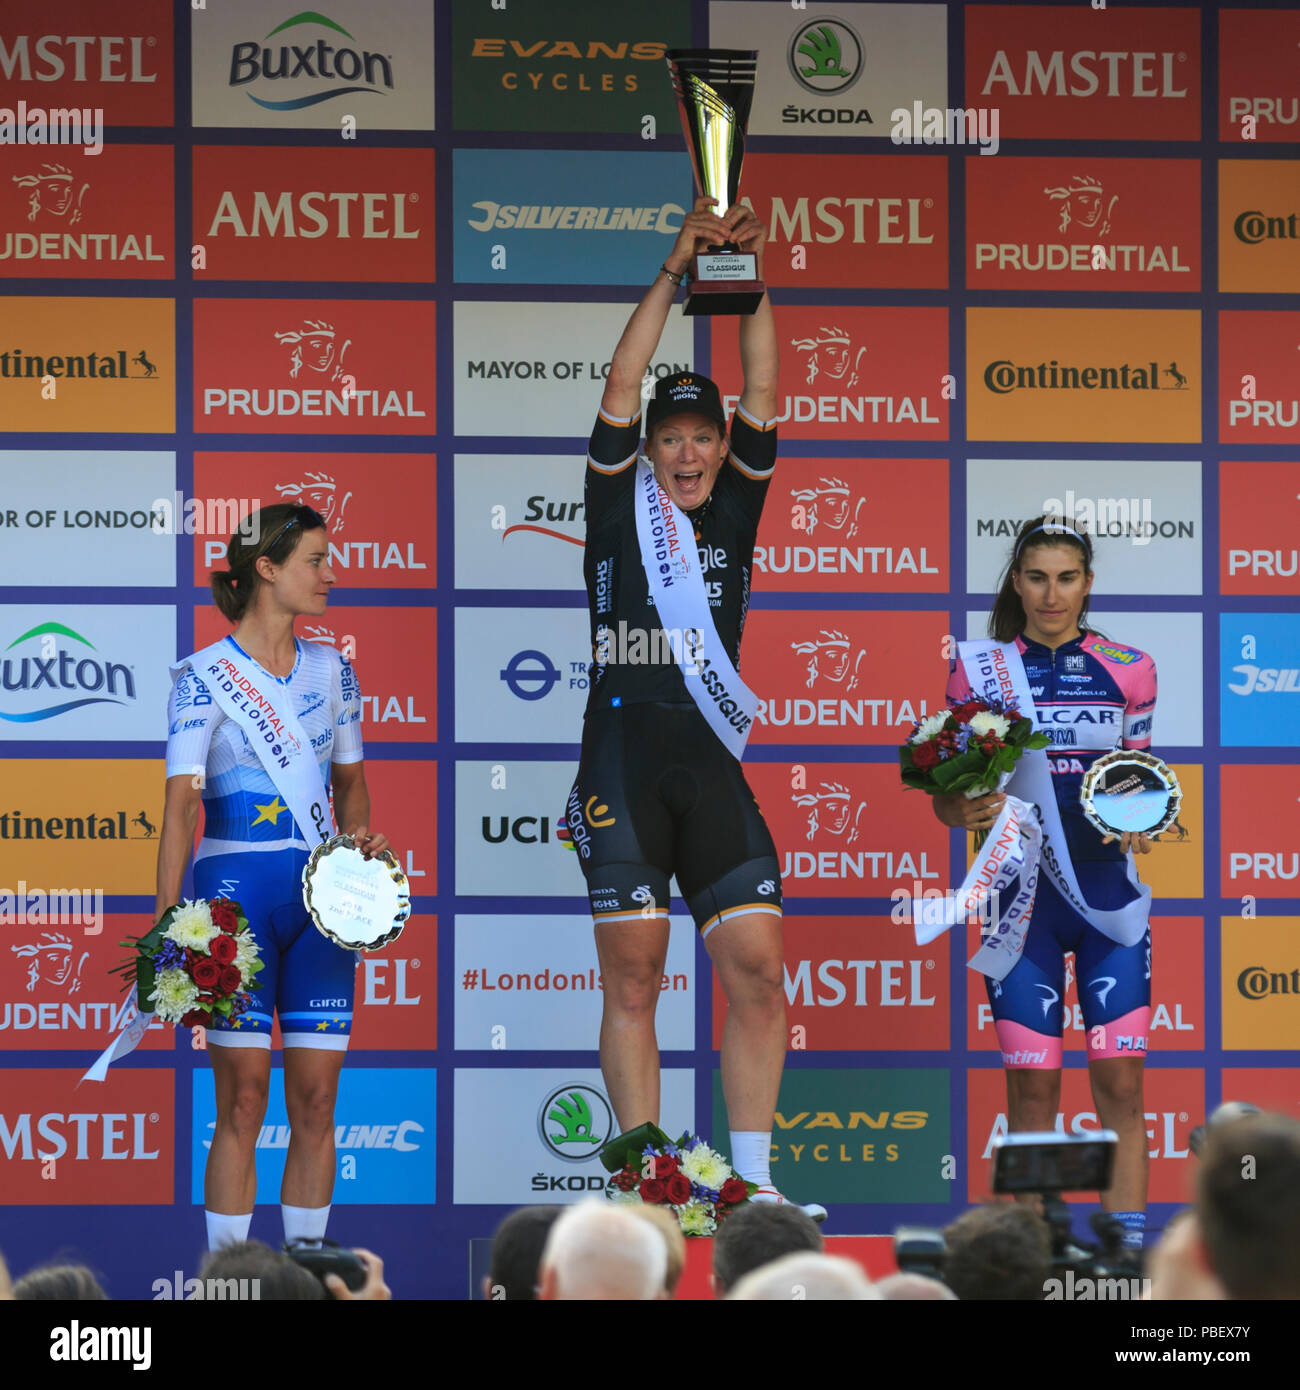 London, UK, 28 July 2018. Prudential RideLondon Classique. Kirsten Wild (Wiggle-High5, NED, first, centre), Marianne Vos (Waowdeals, NED, second, left) and Elisa Balsamo (Valcar PBM, ITA, third, right) share the podium at the RideLondon Classique - a 65km race around a 5.4km circuit finishing on The Mall. Stock Photo